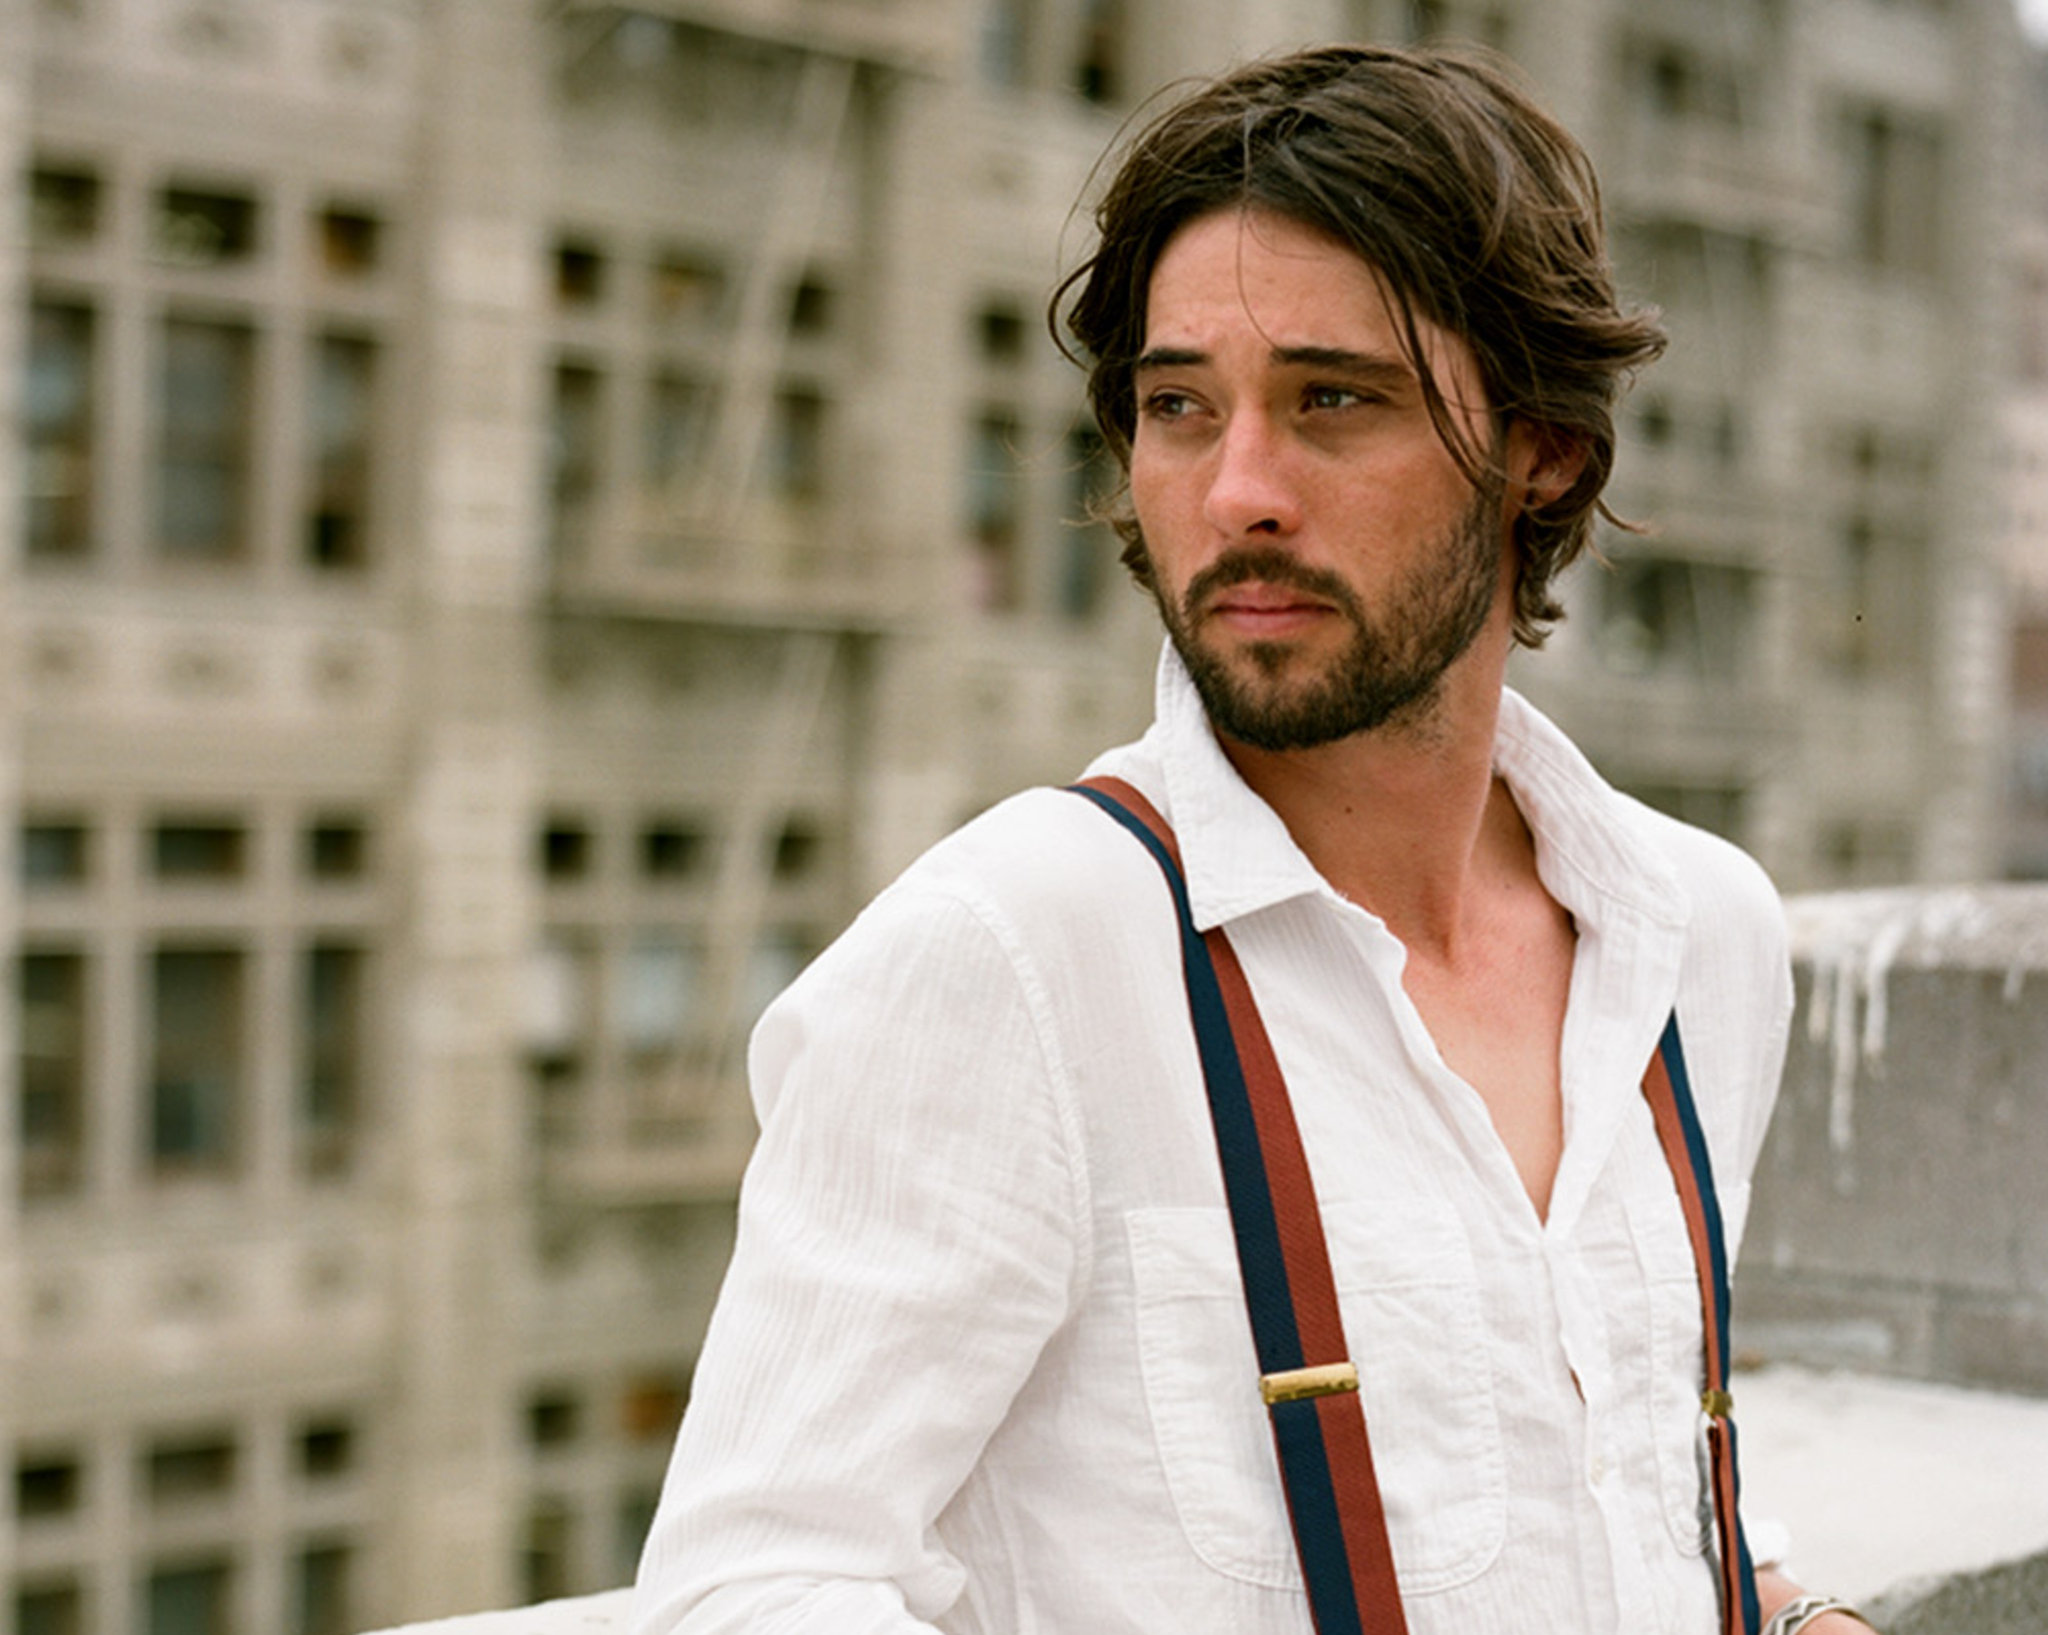 Ryan Bingham: After His 'Crazy' Oscar Win, the Singer-Songwriter Finds New Ground - Click here for link to article